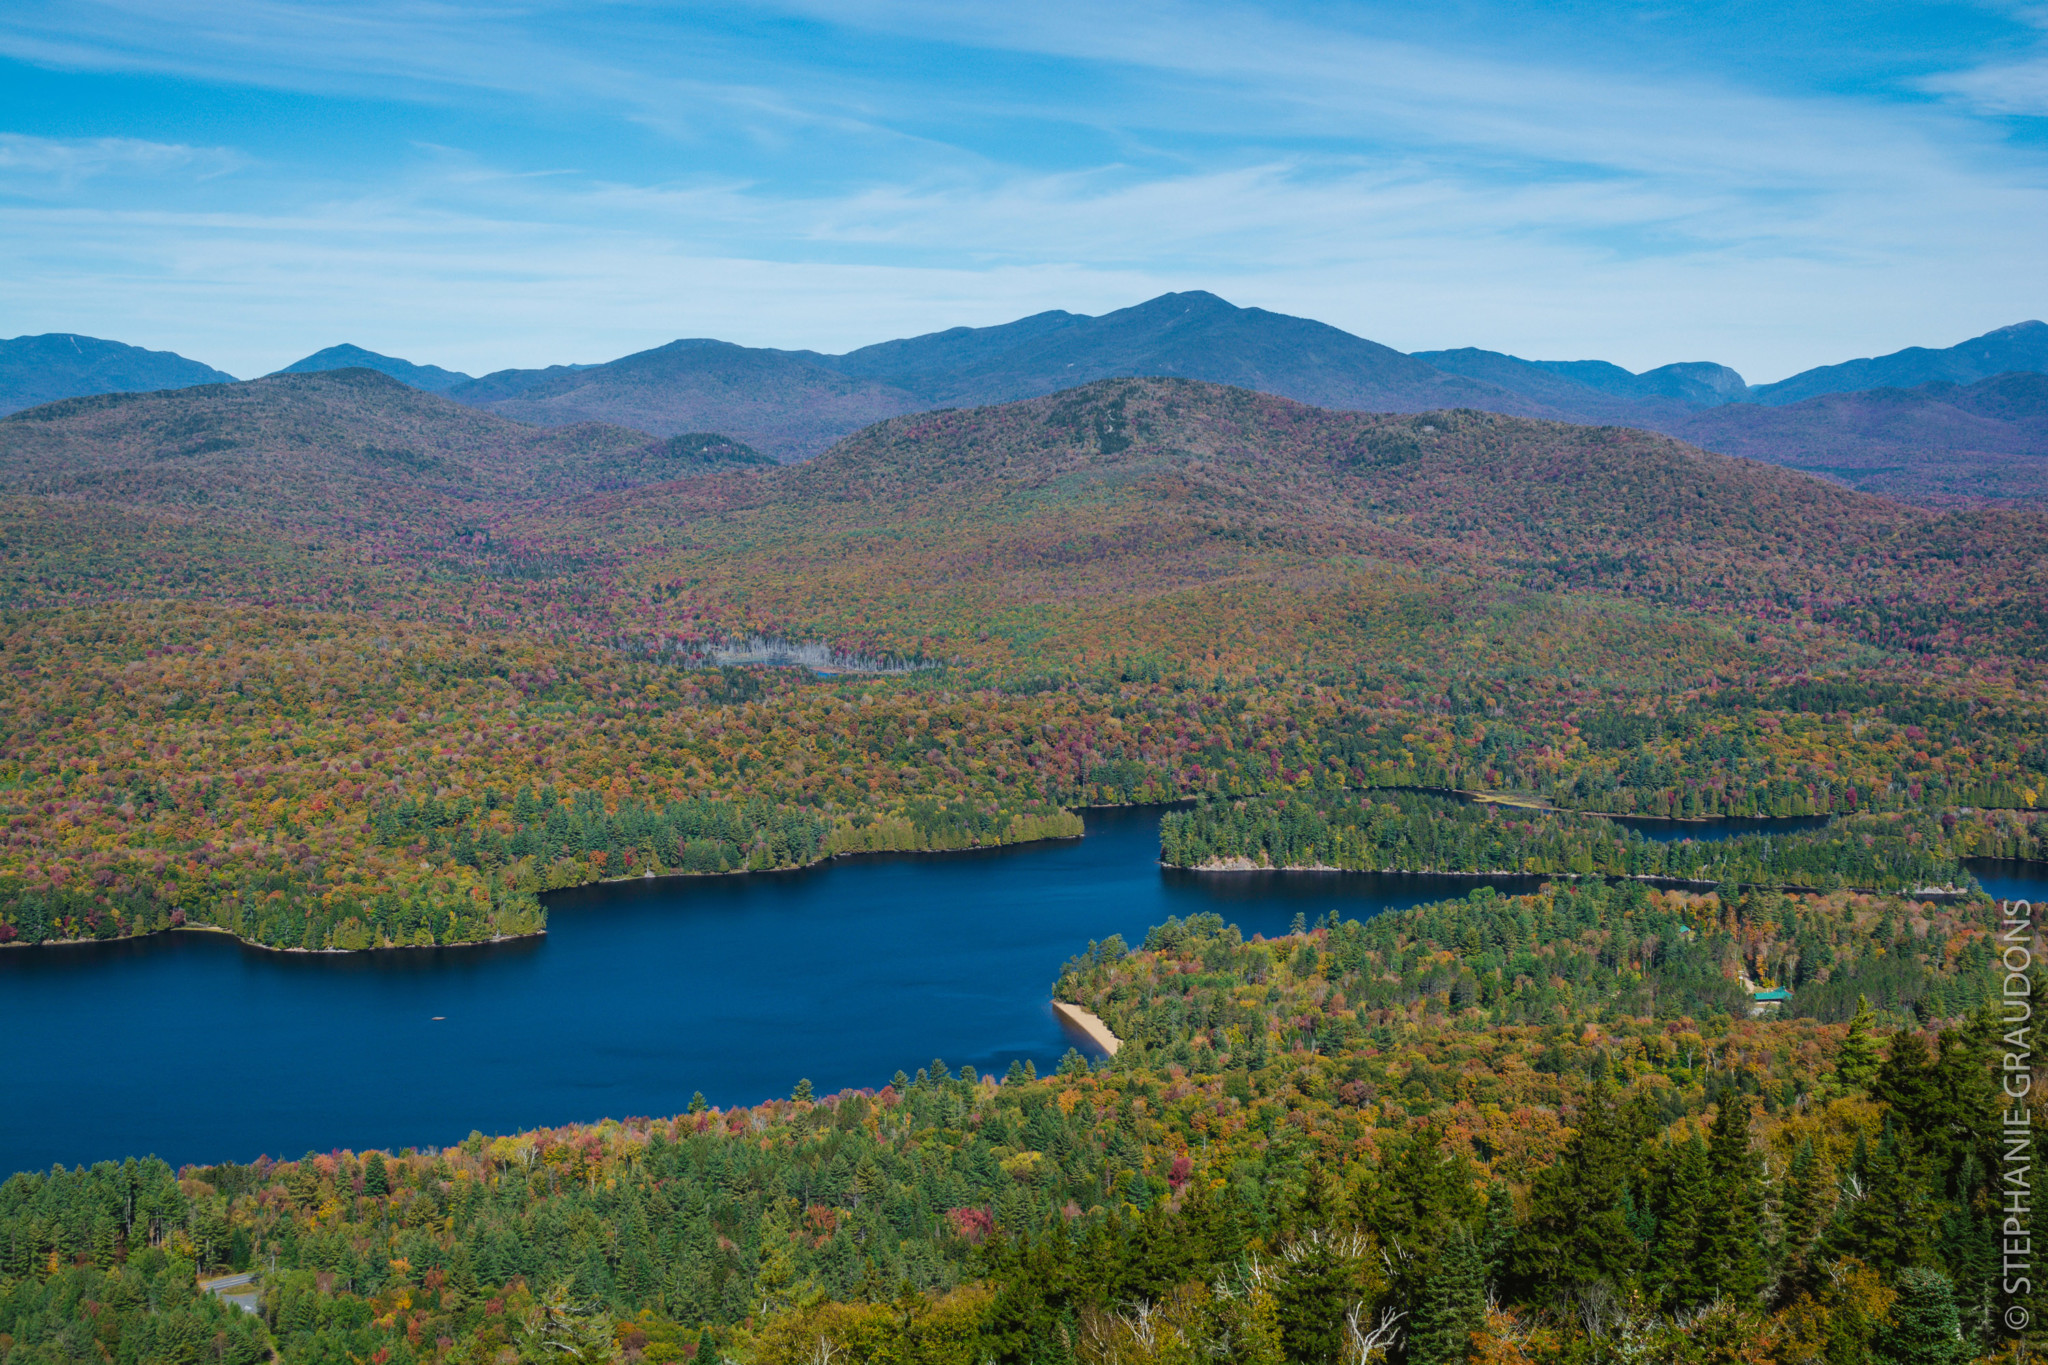 View from top of Goodnow Mountain looking down on valley with blue lake.